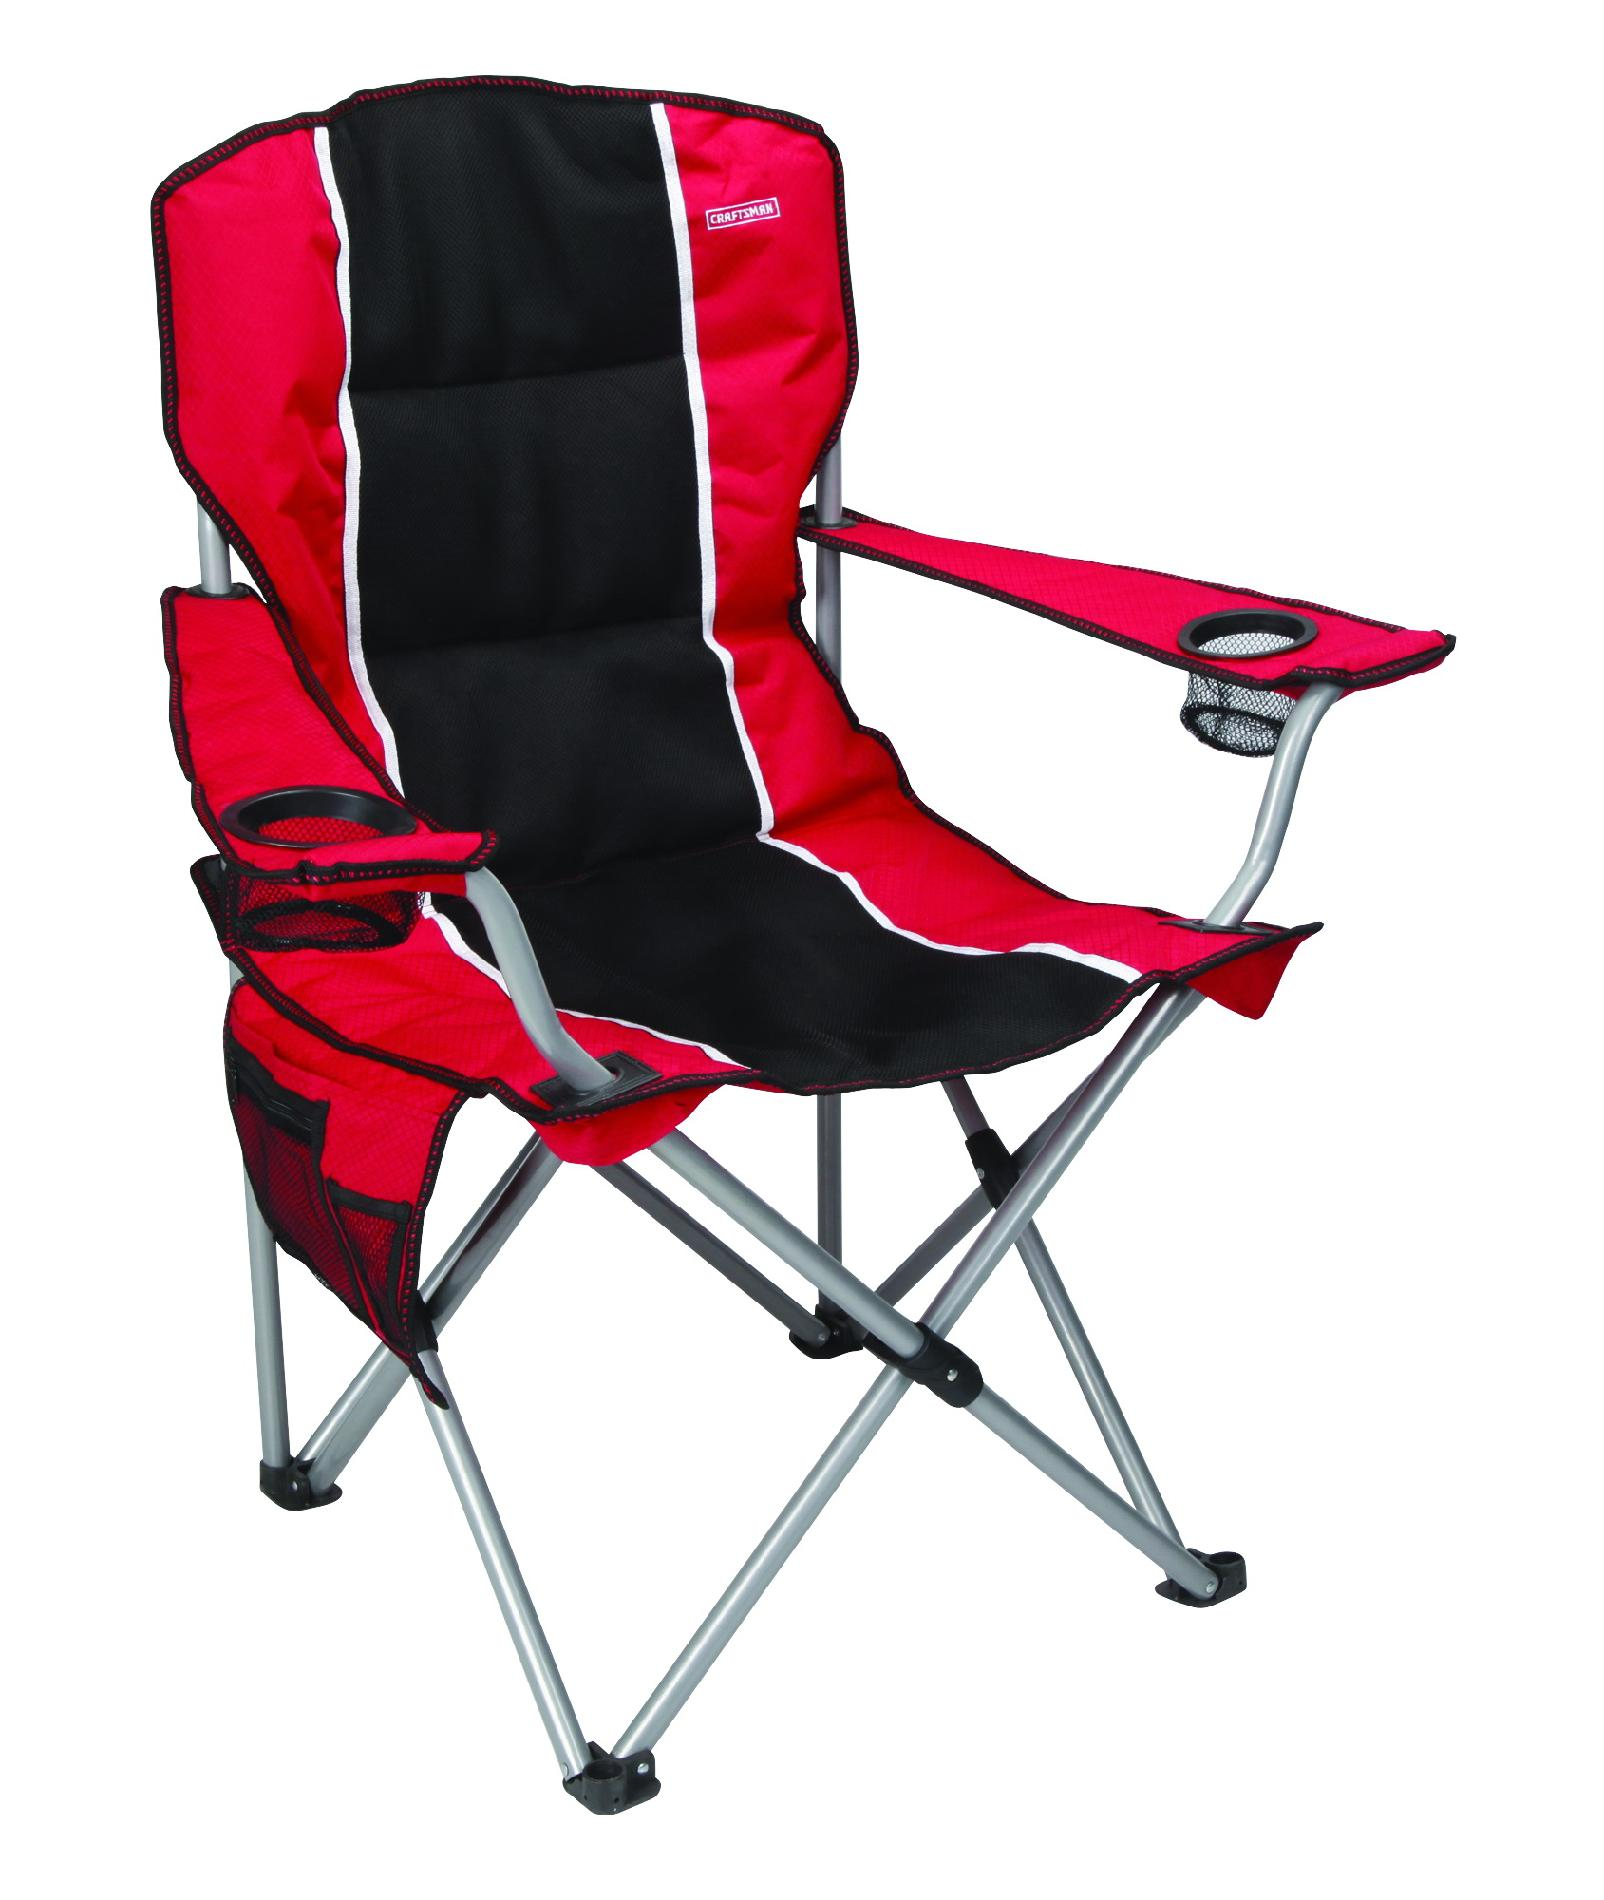 fishing chair gimbal target saucer craftsman camping chair: outdoor camp seating from kmart